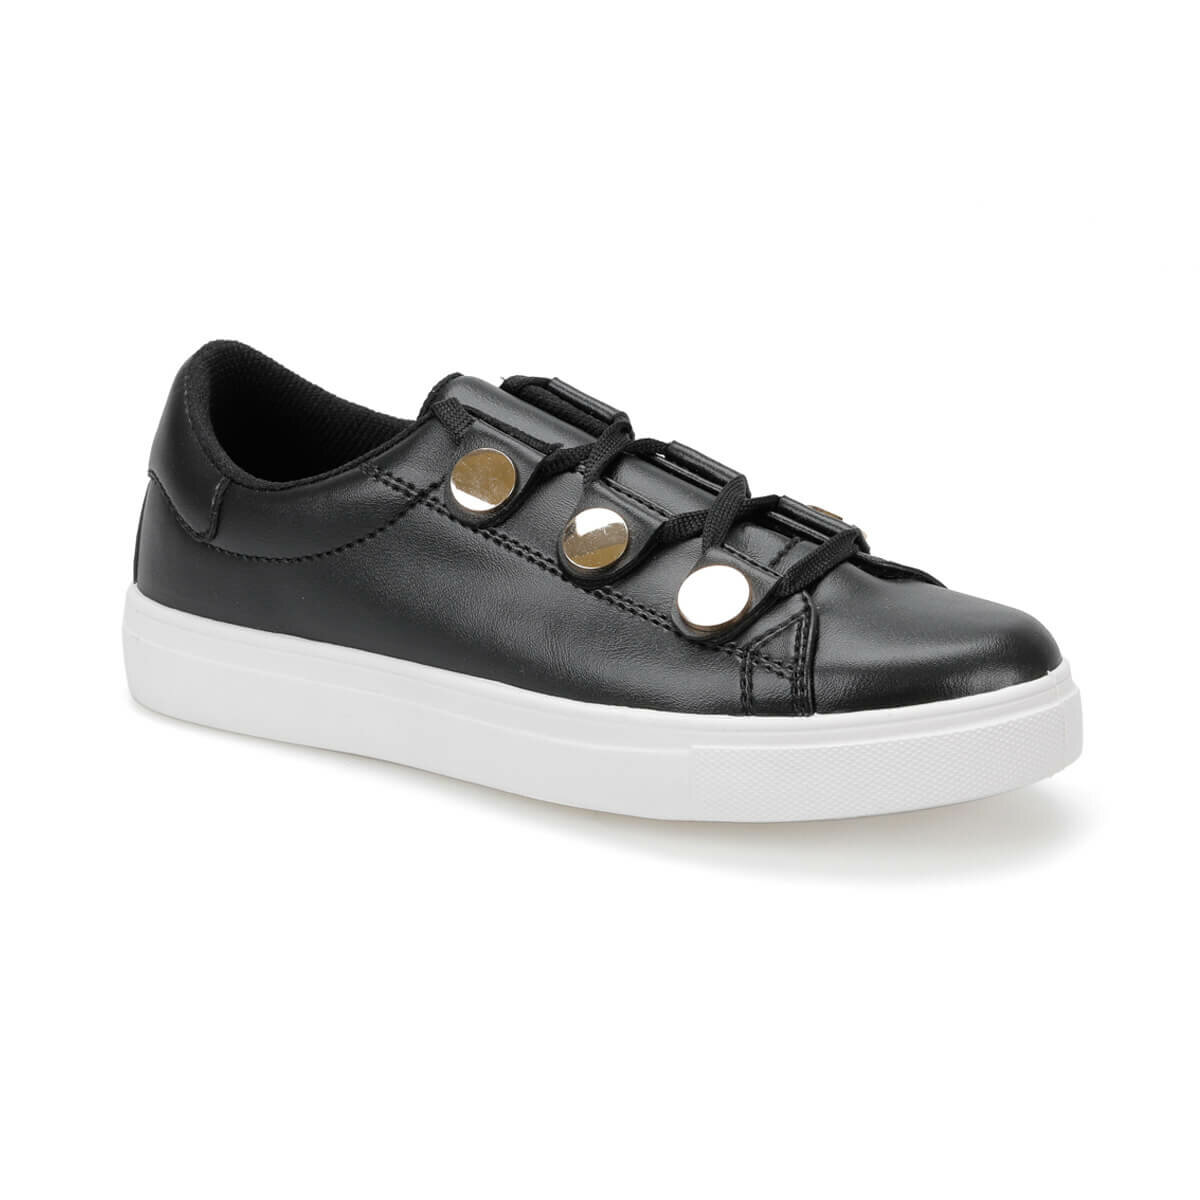 FLO CS19048 Black Women 'S Sneaker Shoes Art Bella